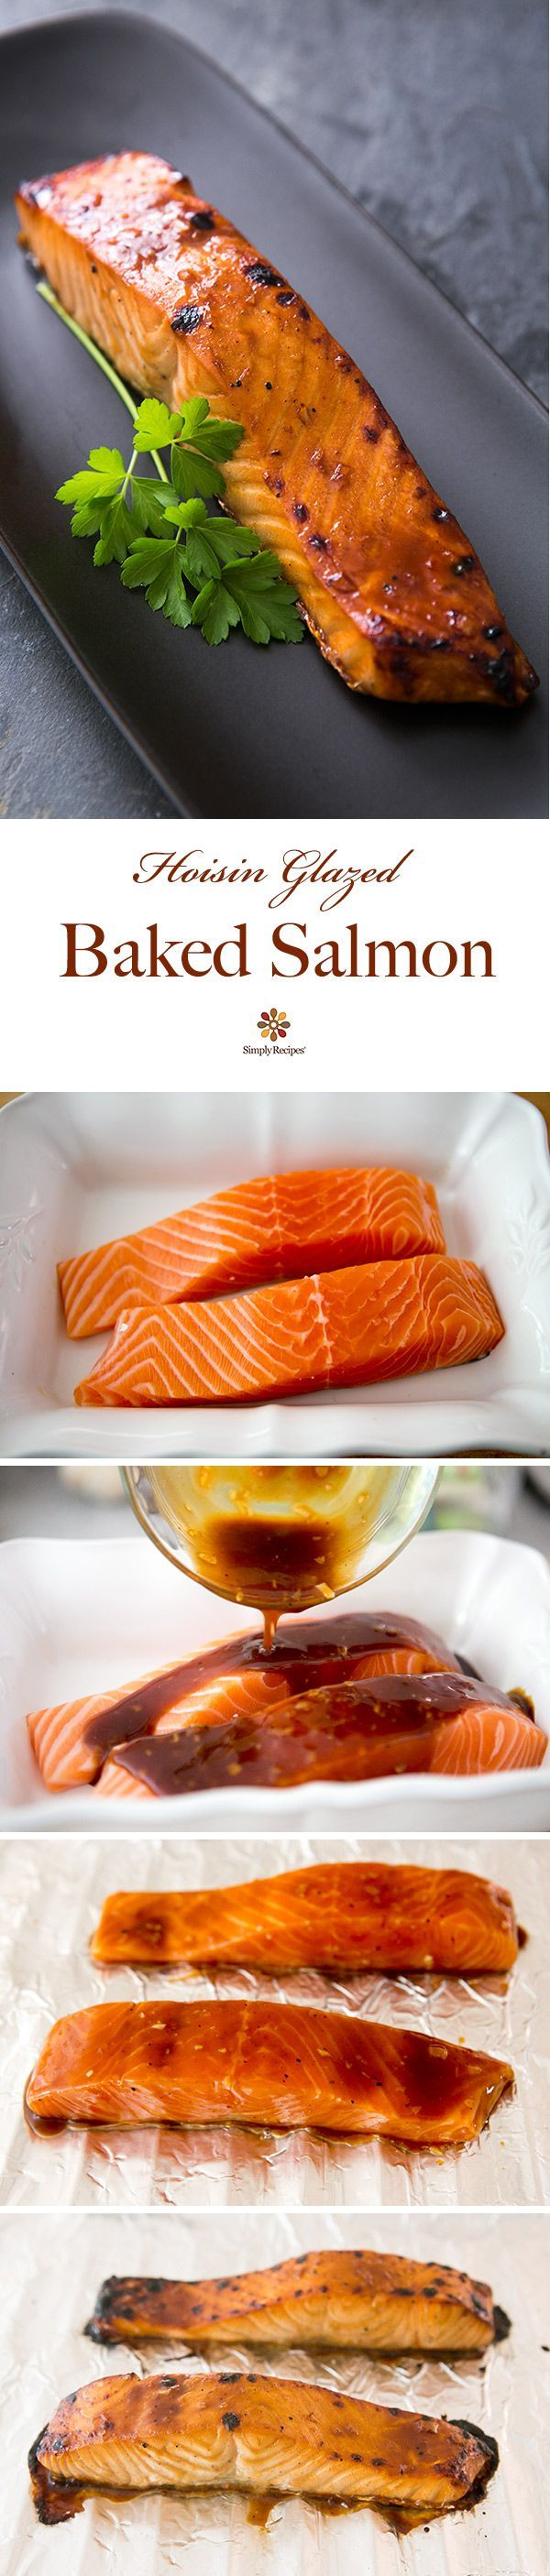 Hoisin Glazed Baked Salmon ~ Quick And Easy Broiled Salmon Fillets With A  Hoisin Sauce Glaze